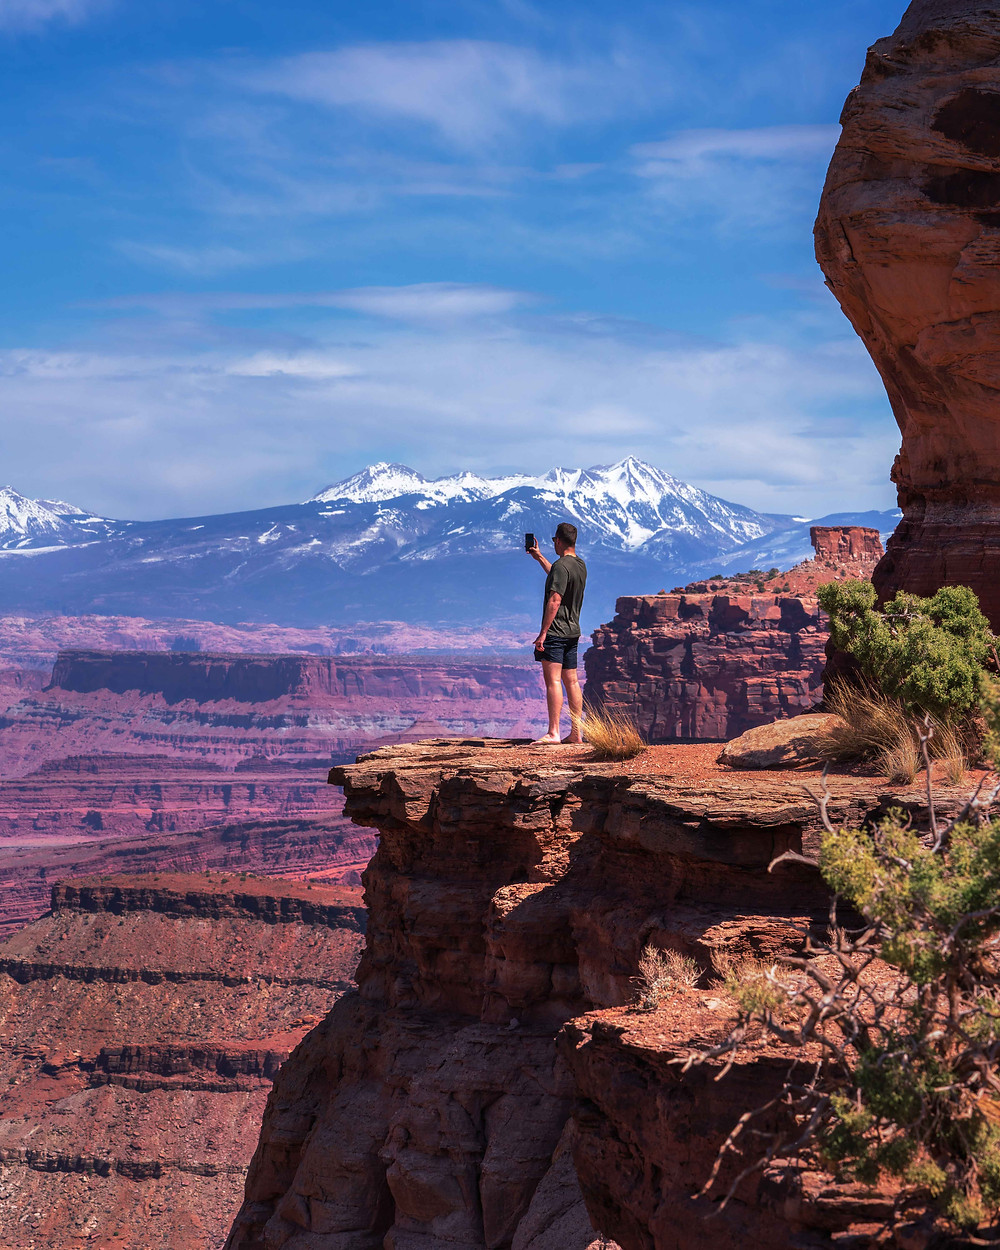 Man taking a photo of the red and purple rock and snow capped mountains in Canyonlands National Park